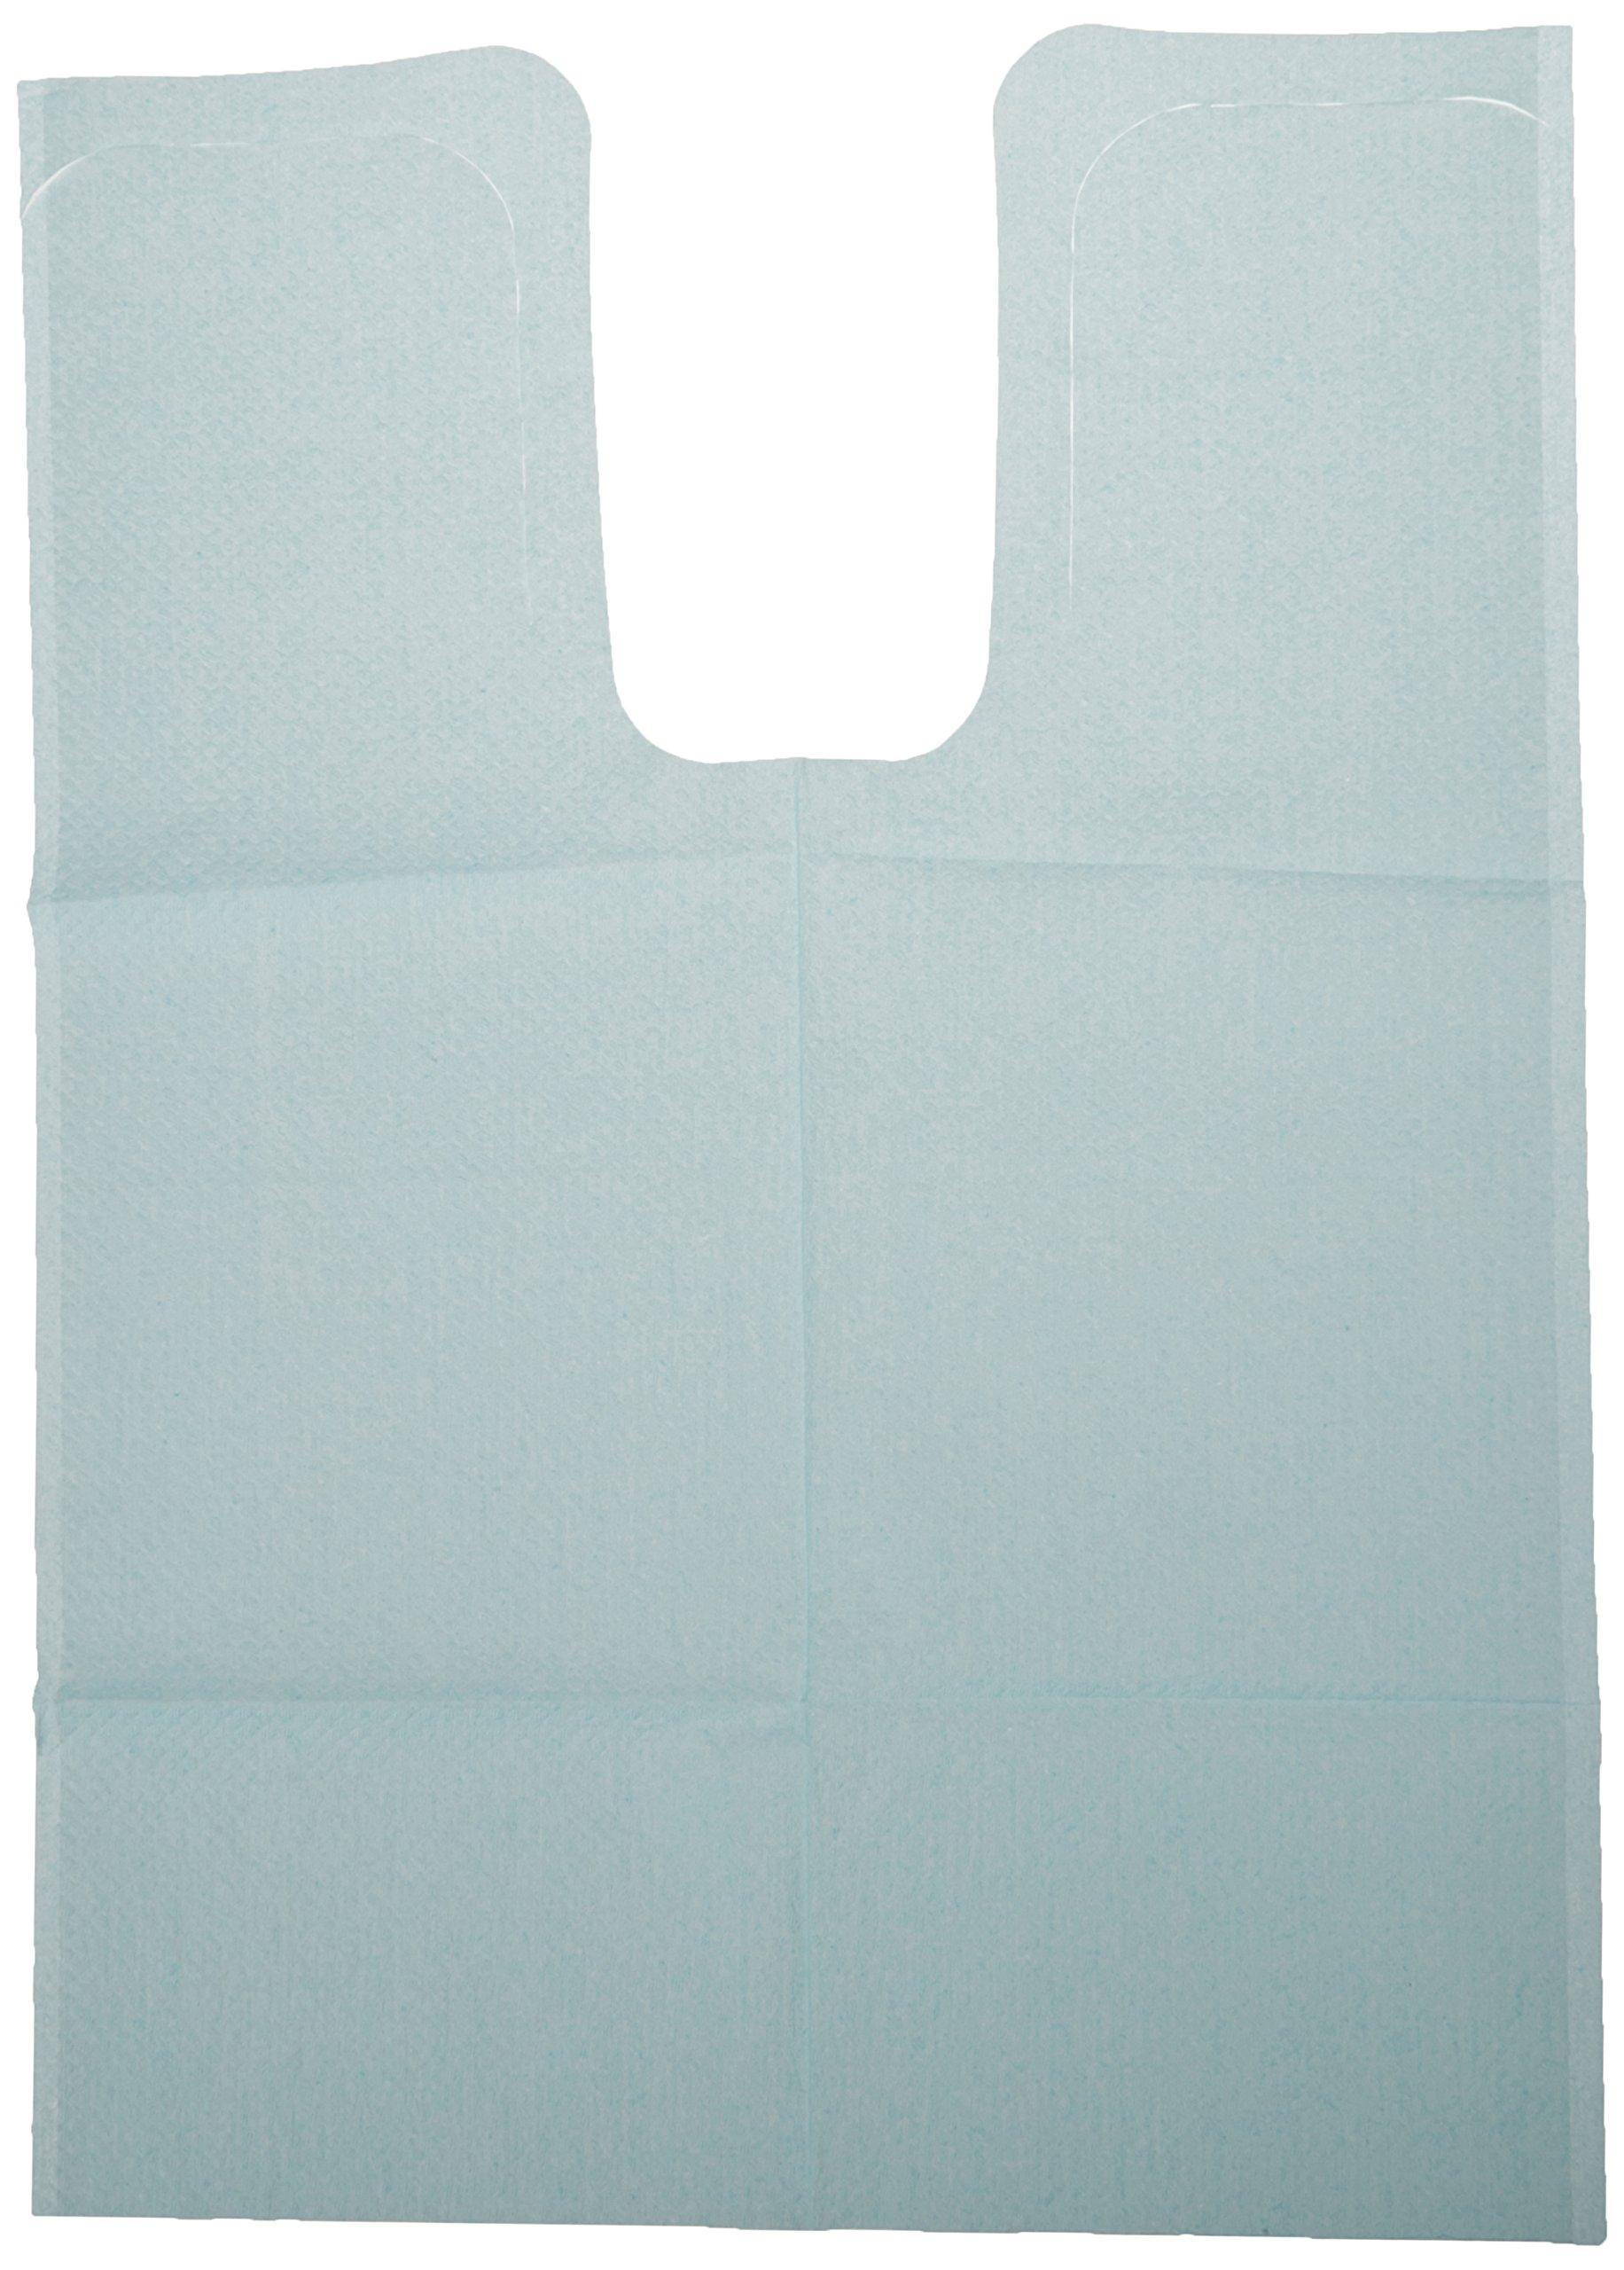 TIDI Products 917673 1-Ply Tissue/Poly Chainless Bibs with Ties, Shell Embossed, Blue, 18'' Length x 25'' Width (Pack of 250)